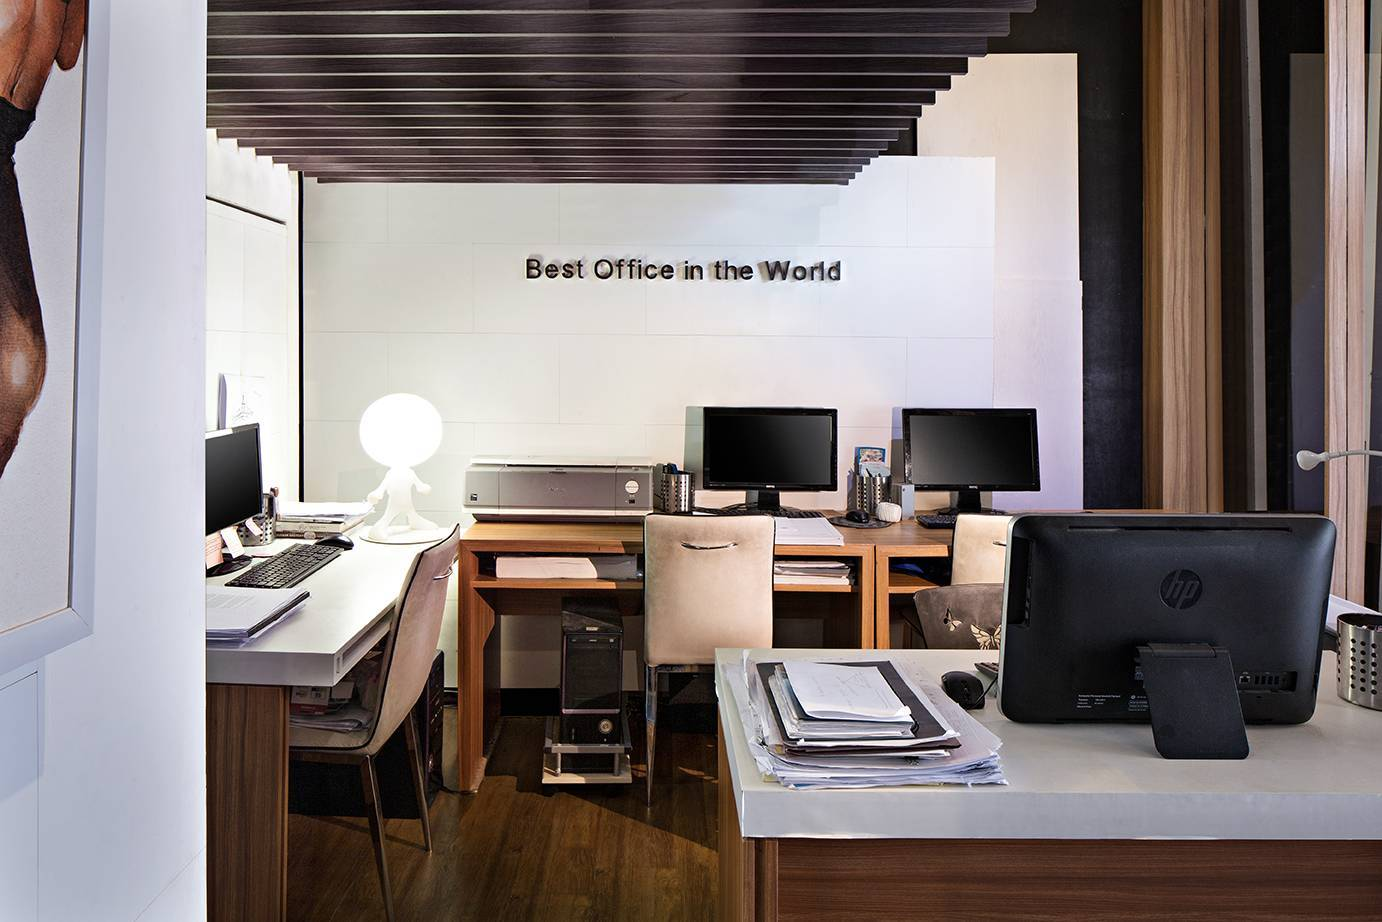 Raw Architecture Raw Office 2Nd St Pulau Ayer 1 Permata Buana, Jakarta 2Nd St Pulau Ayer 1 Permata Buana, Jakarta Raw Office Workroom   1612